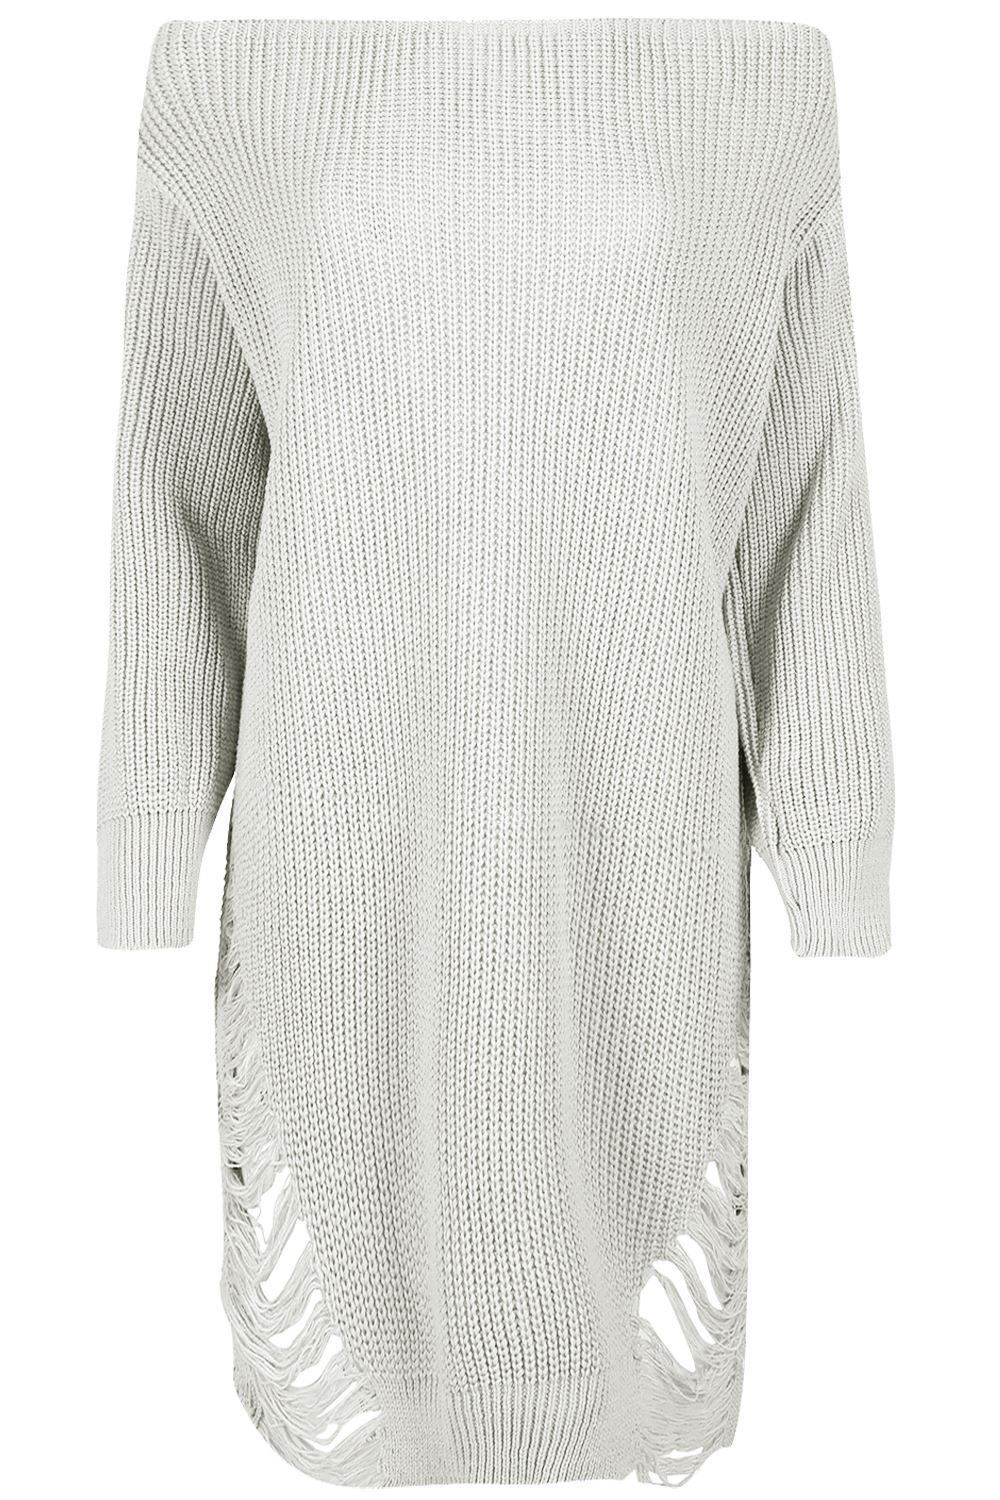 Womens-Oversized-Jumper-Ladies-Dress-Long-Sleeve-Chunky-Knitted-Long-Sweater-Top thumbnail 25